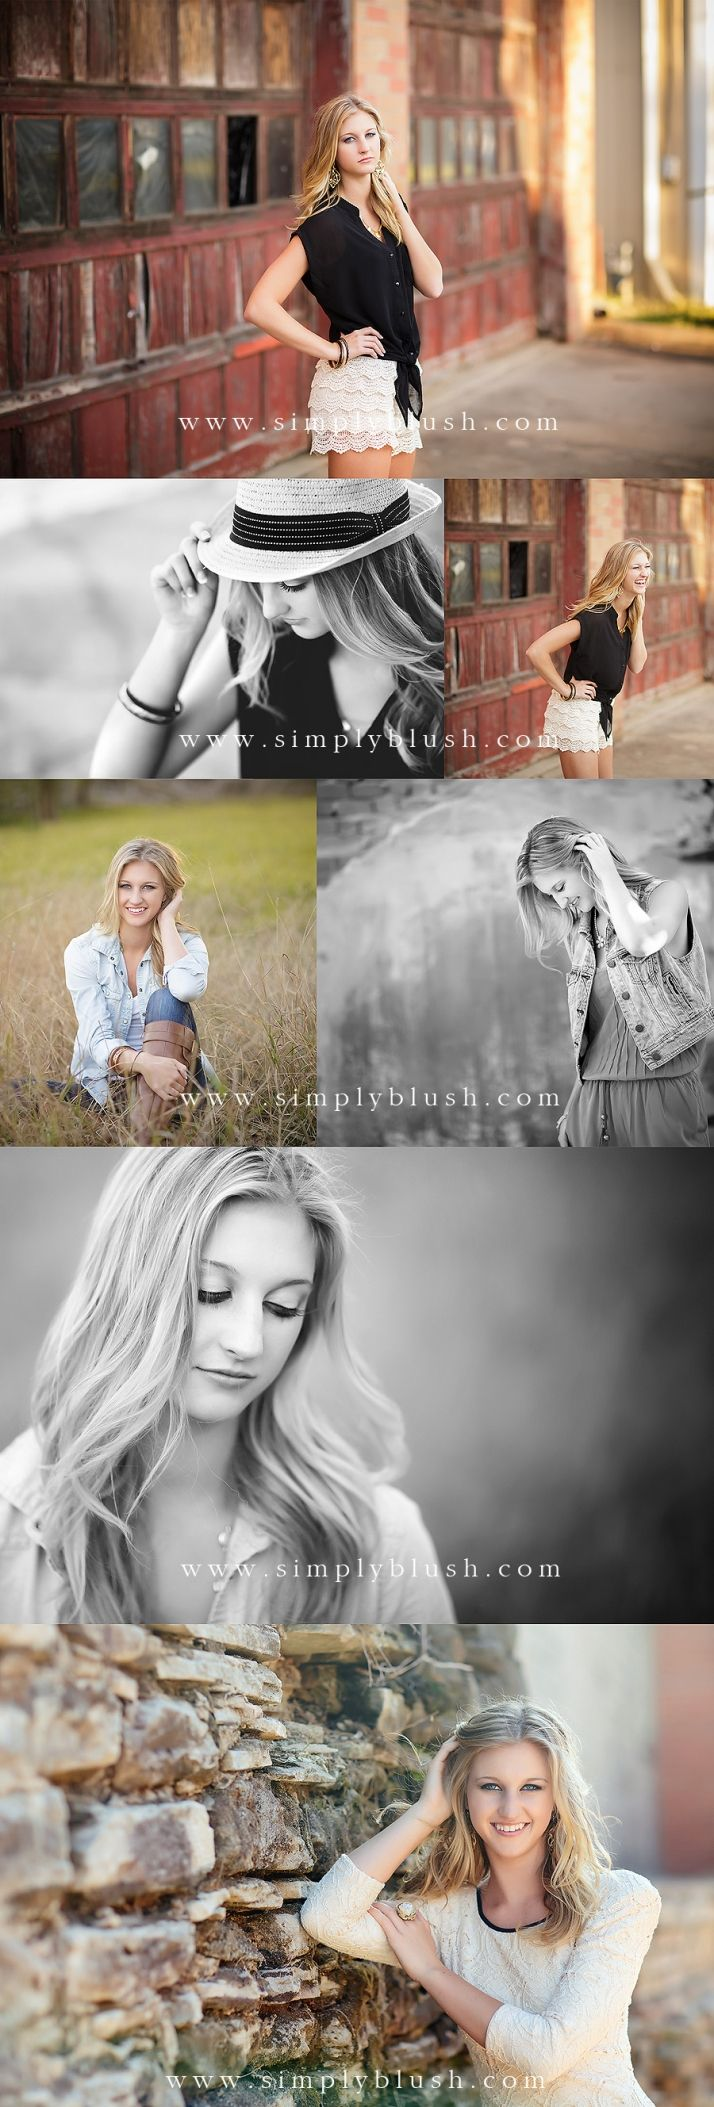 her smile will make you smile… cy ranch high school senior photographer | North Houston, Tomball, Cypress & The Woodlands TX Child & Family ...